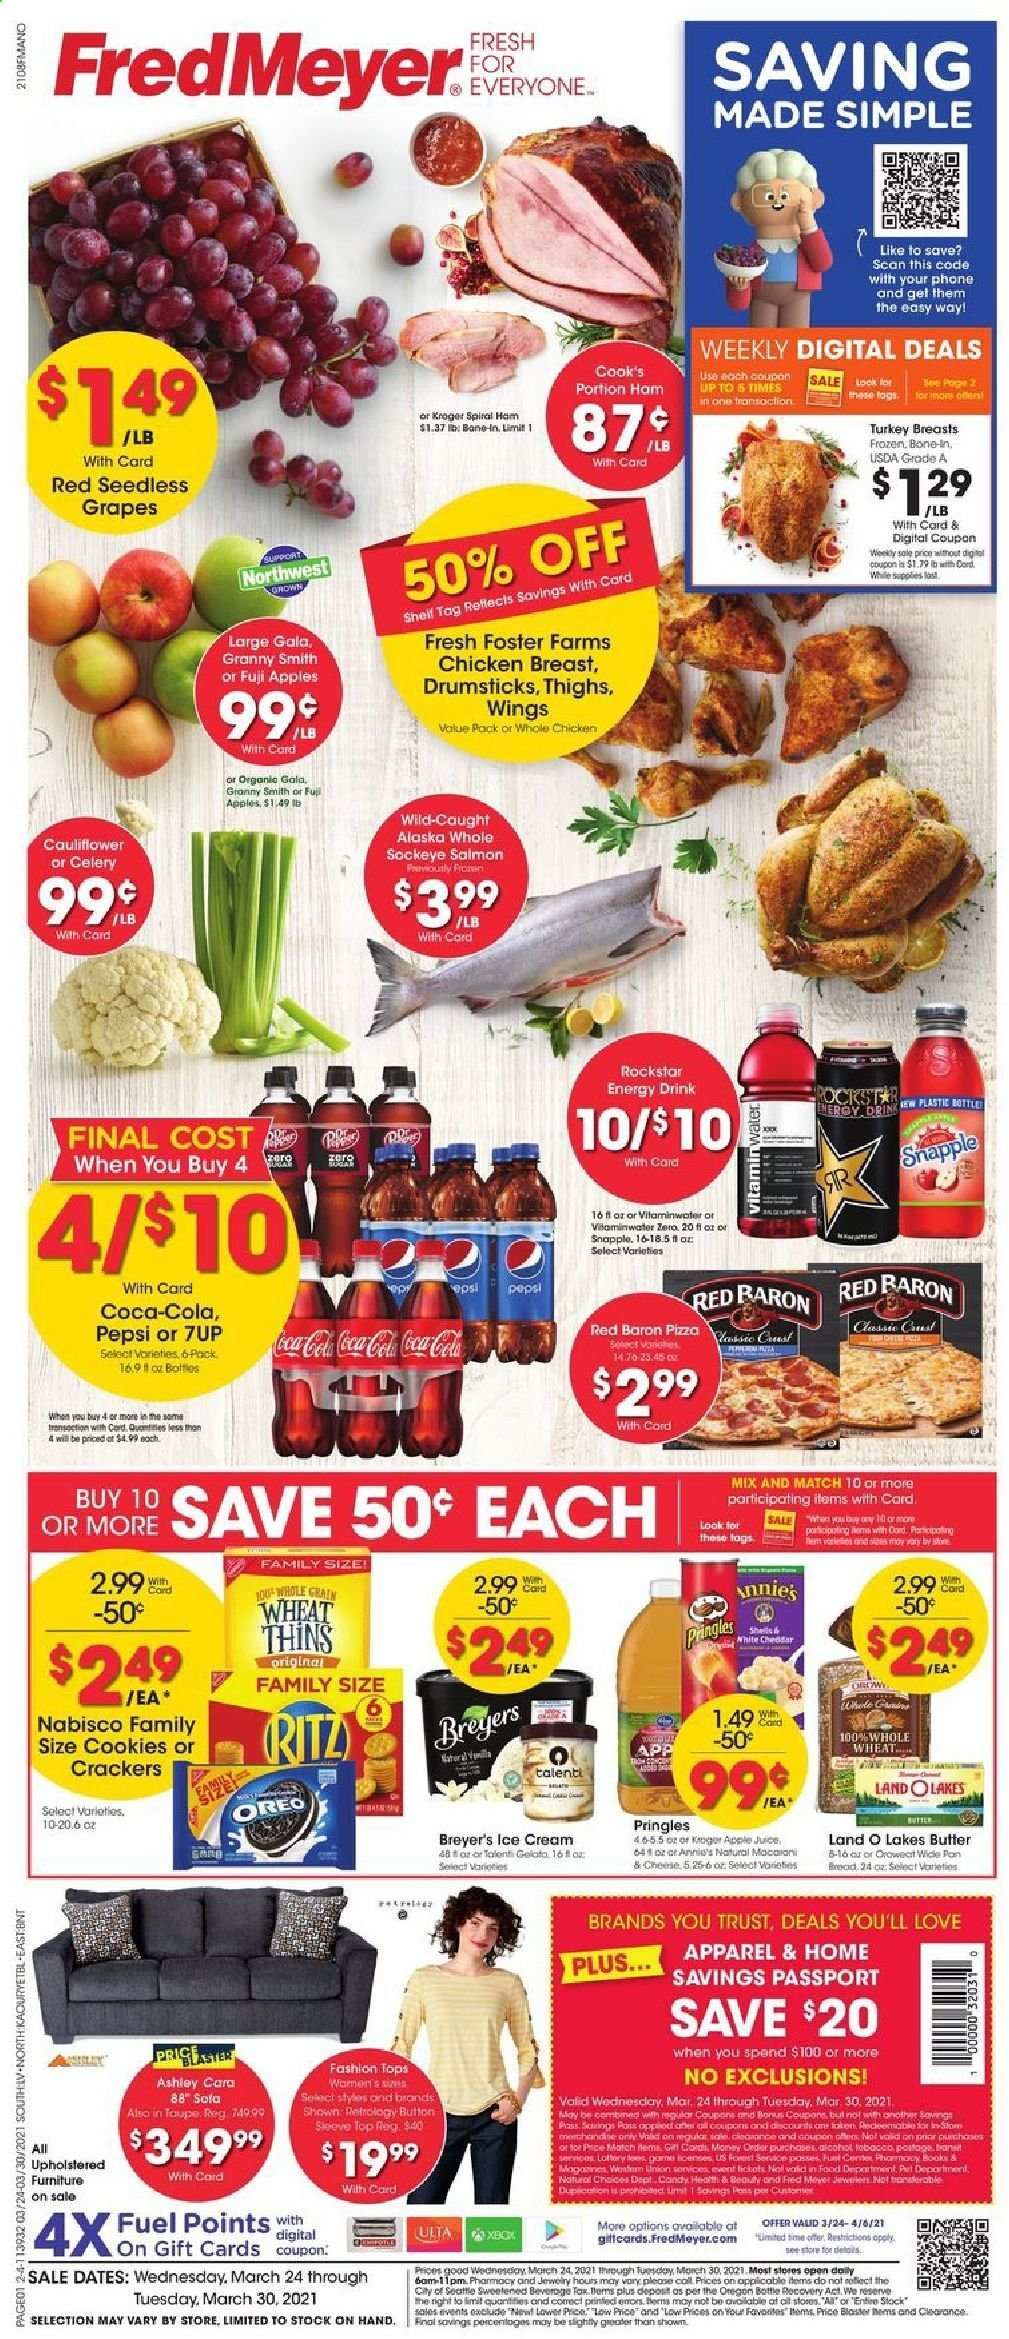 Fred Meyer Flyer - 03.24.2021 - 03.30.2021 - Sales products - celery, seedless grapes, Fuji apple, Trust, bread, salmon, pizza, Annie's, ham, spiral ham, cheddar, Oreo, butter, ice cream, Talenti Gelato, gelato, cauliflower, Red Baron, cookies, candy, crackers, RITZ, Pringles, Thins, apple juice, Coca-Cola, Pepsi, juice, energy drink, 7UP, Snapple, Rockstar, L'Or, alcohol, Cook's, turkey, turkey breast, whole chicken, chicken breasts, chicken meat, book, Breyer, Gala apple, grapes. Page 1.